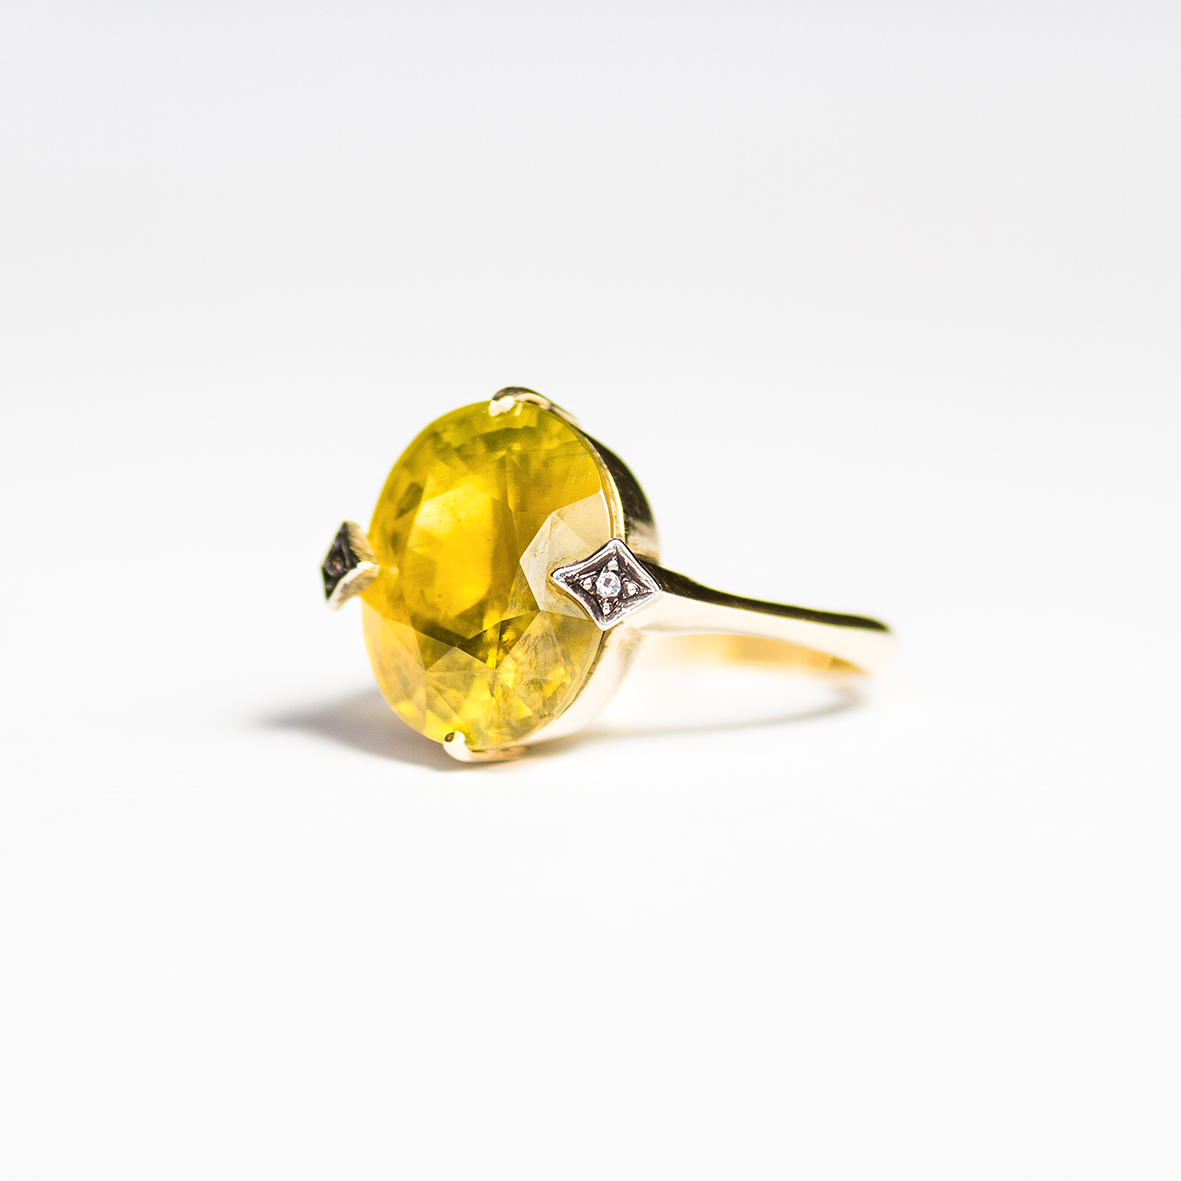 2. OONA_gems of ceylon_ficha1_yellow tourmaline ring